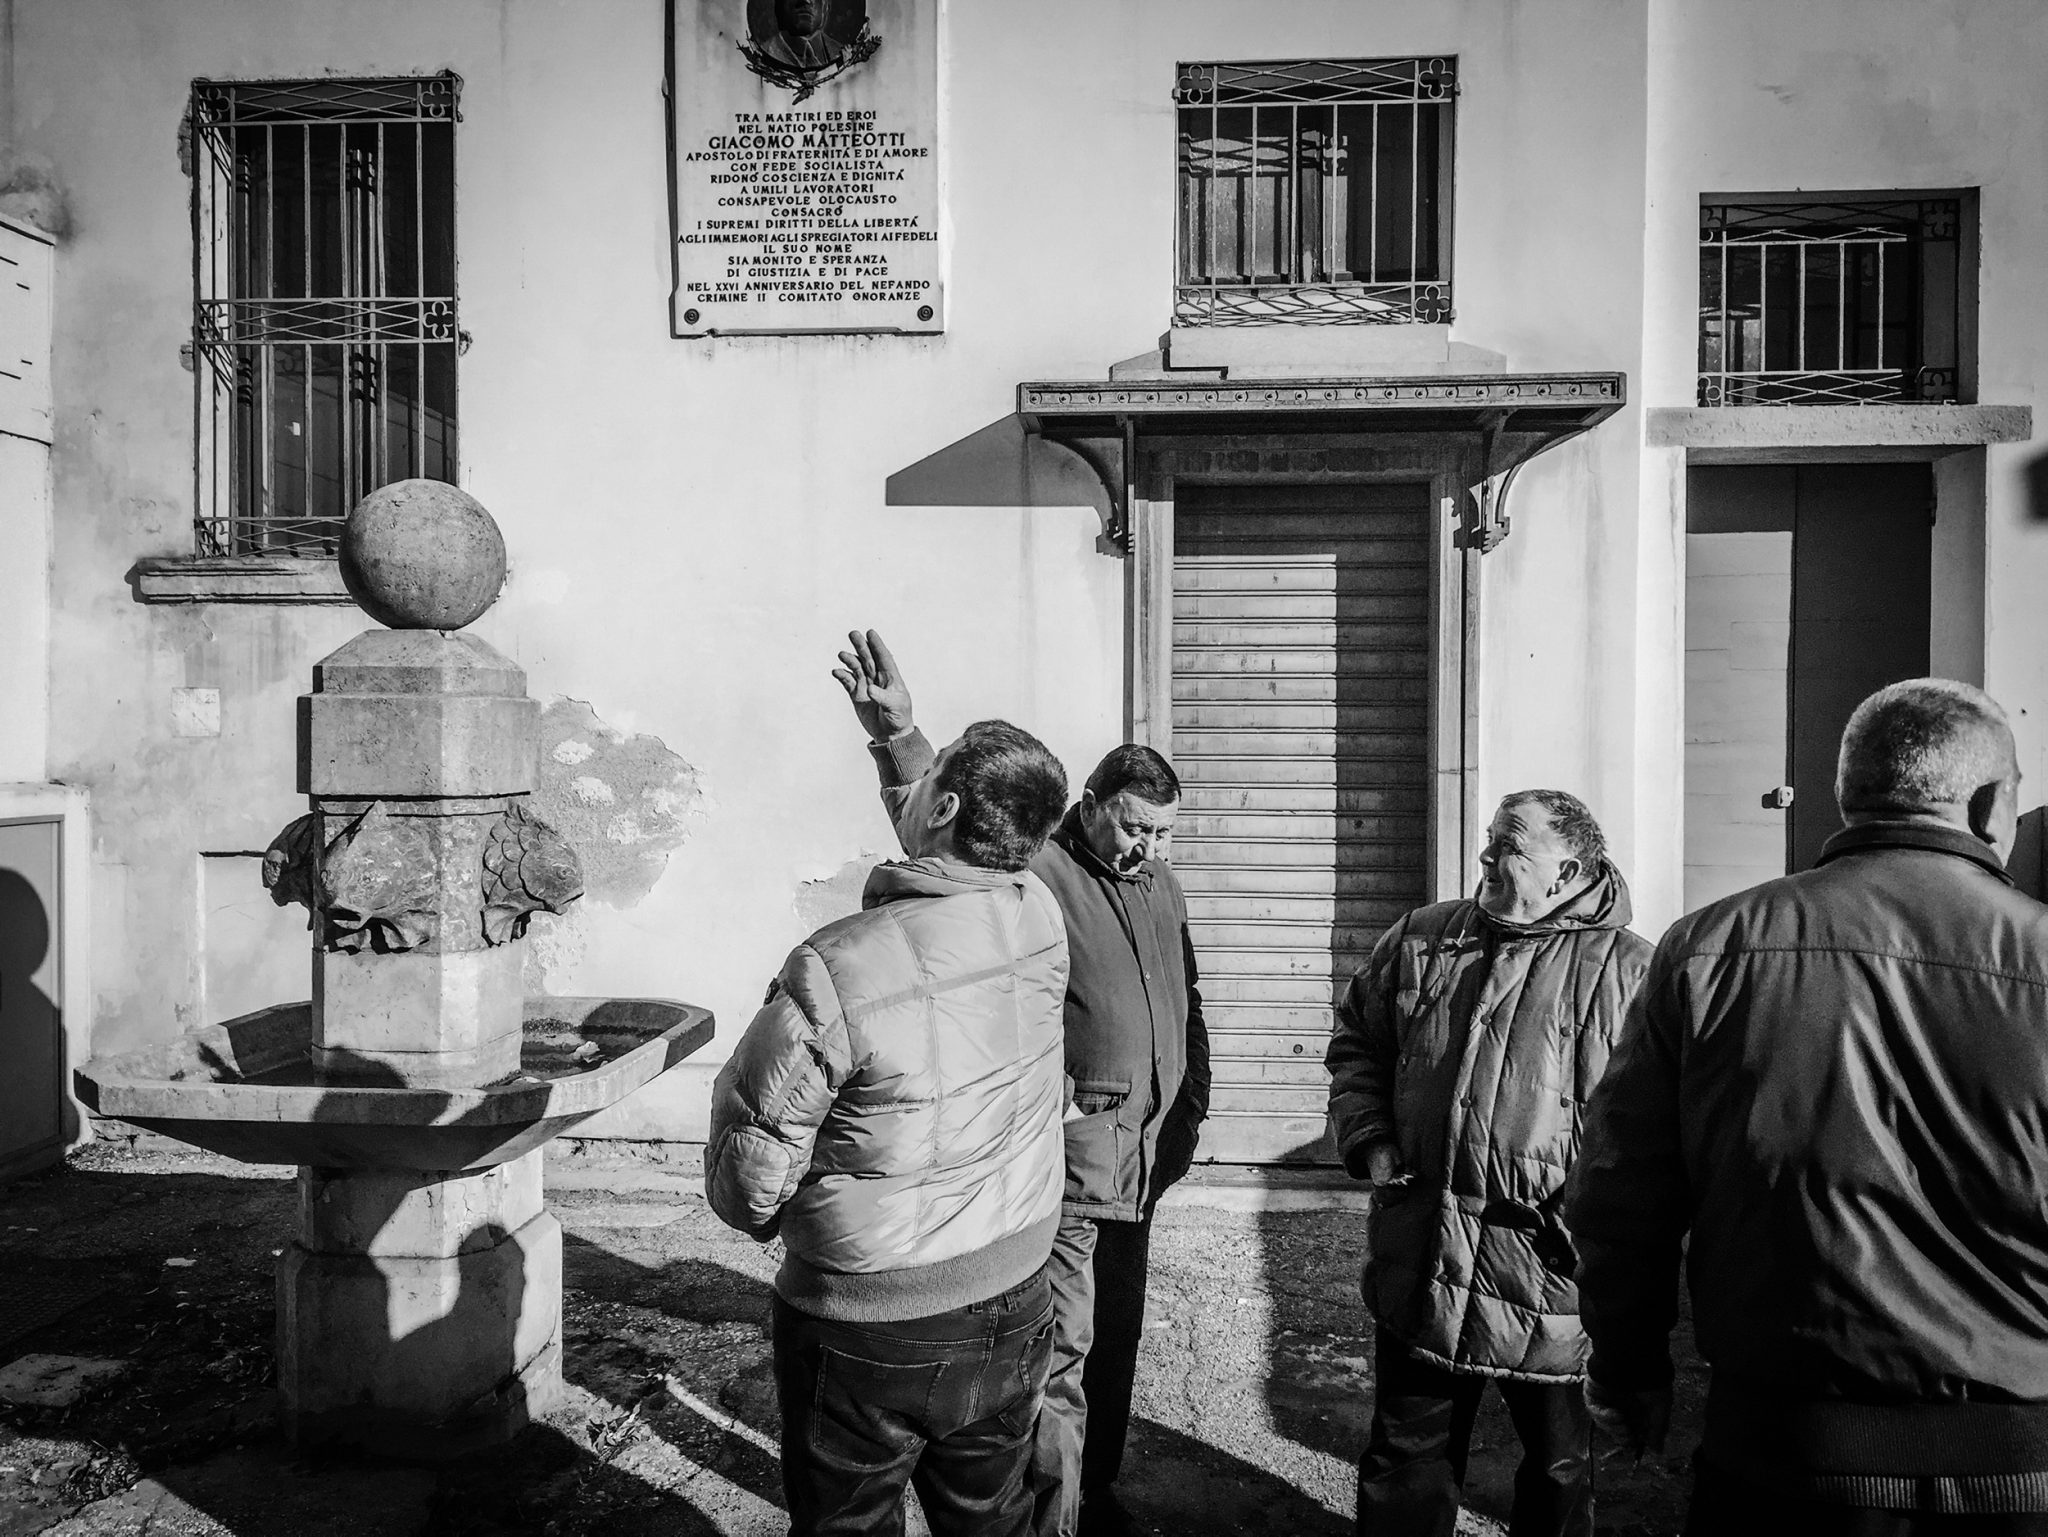 People discussing the new building in Piazza Matteotti. Rovigo, 2017